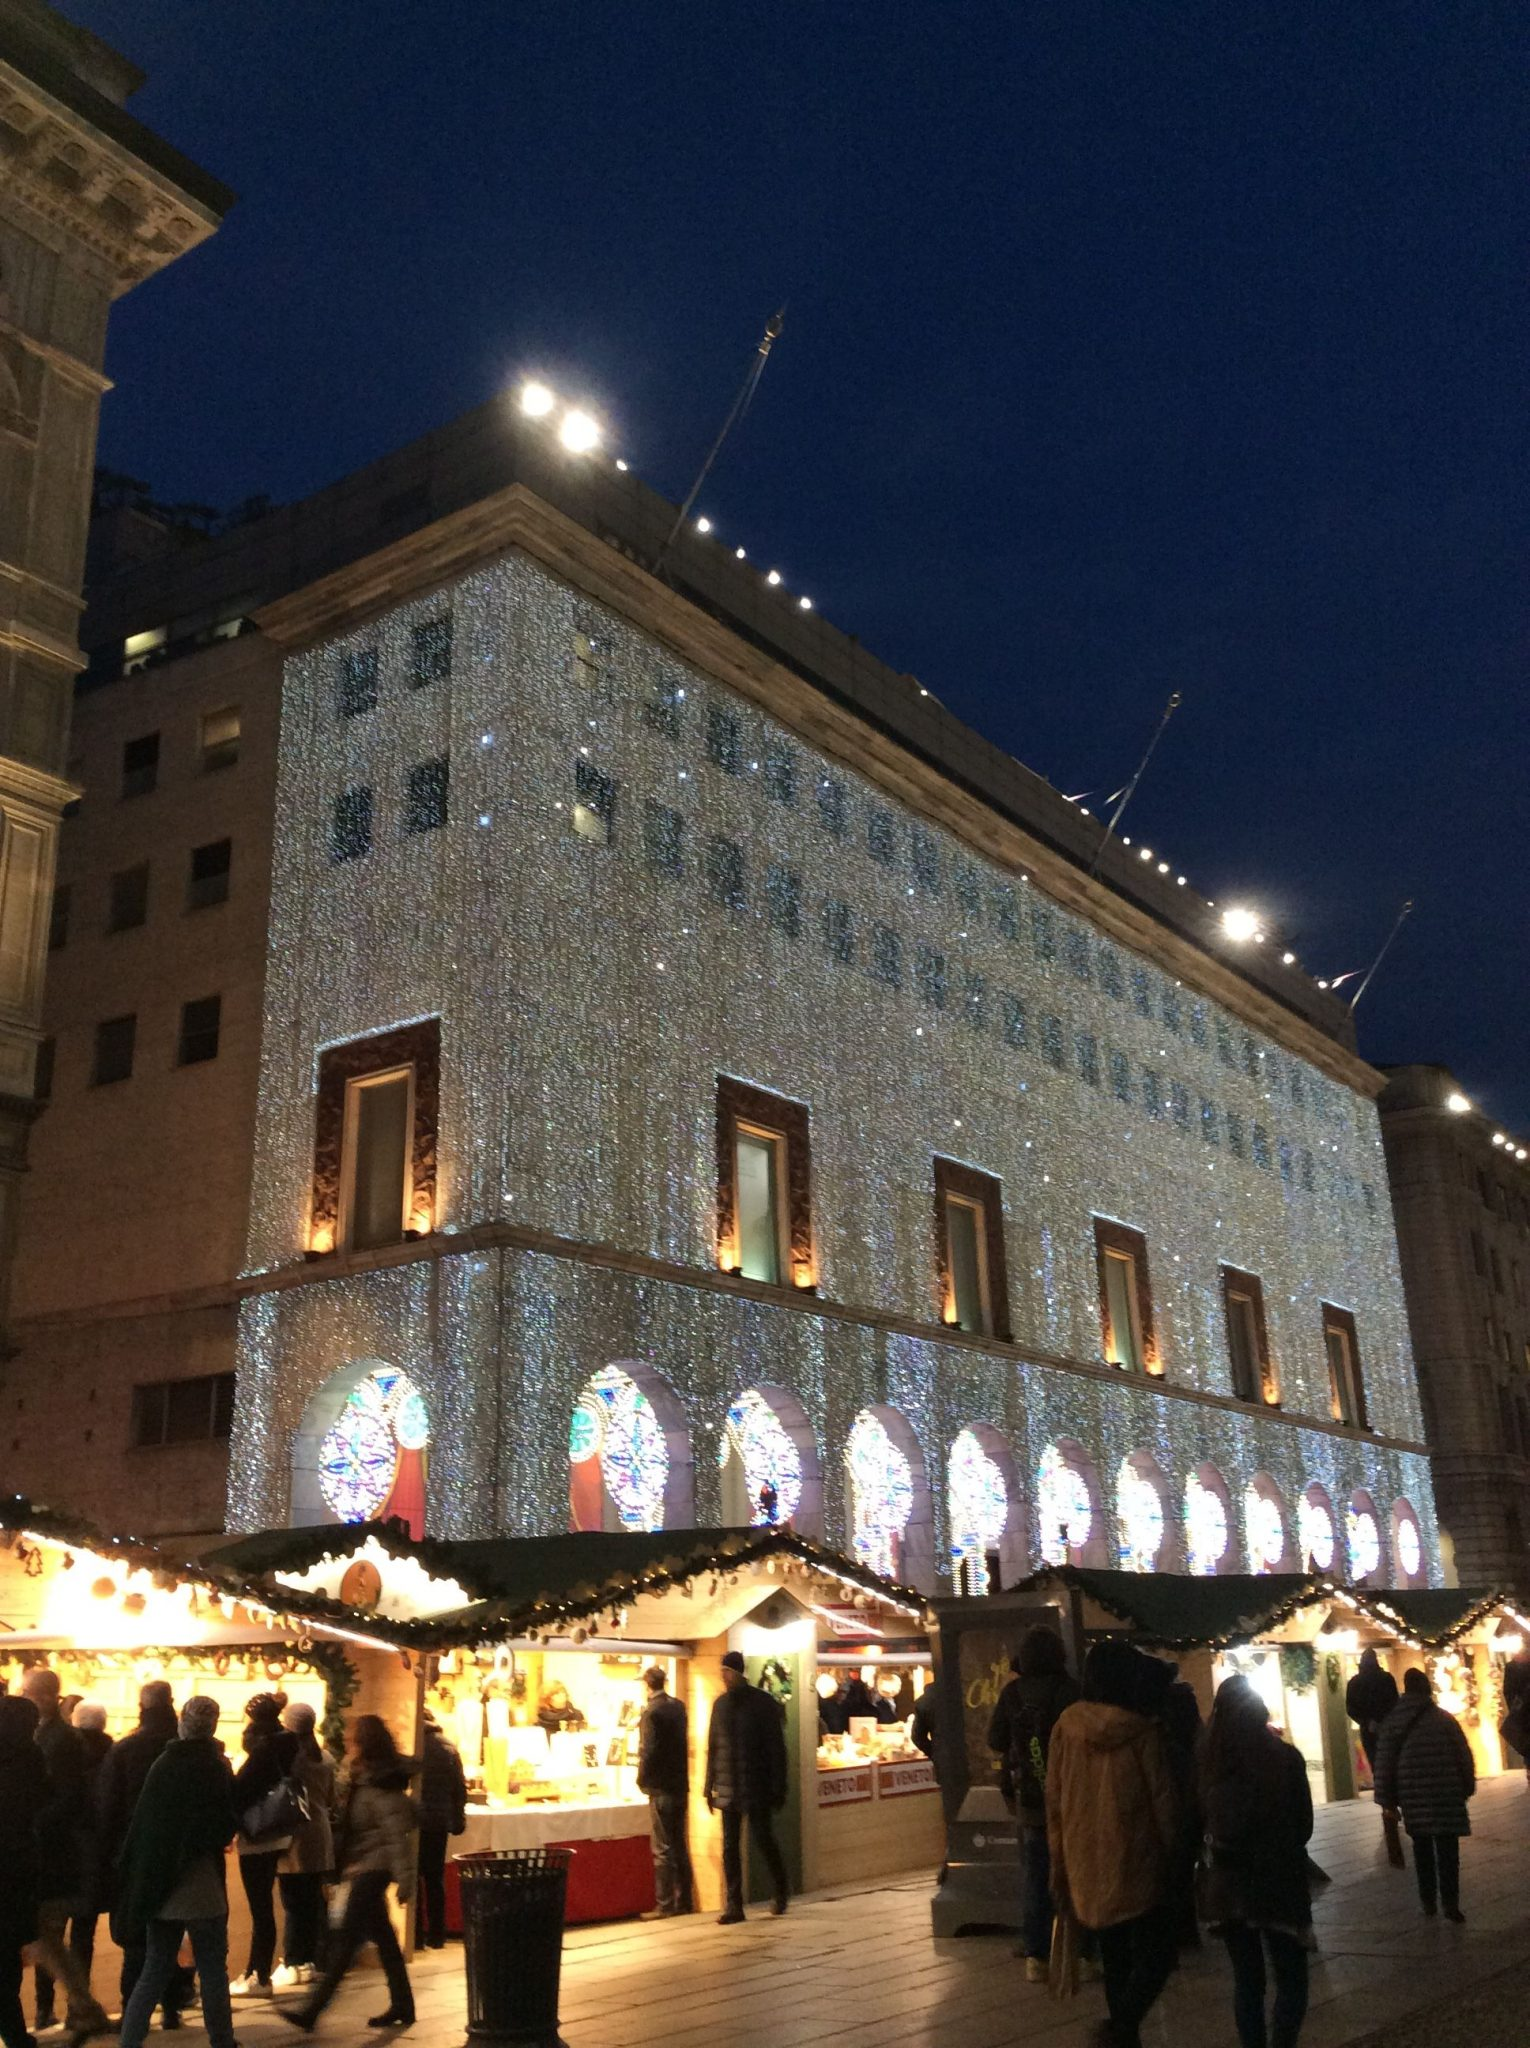 Christmas in Milan: lights, shops and market